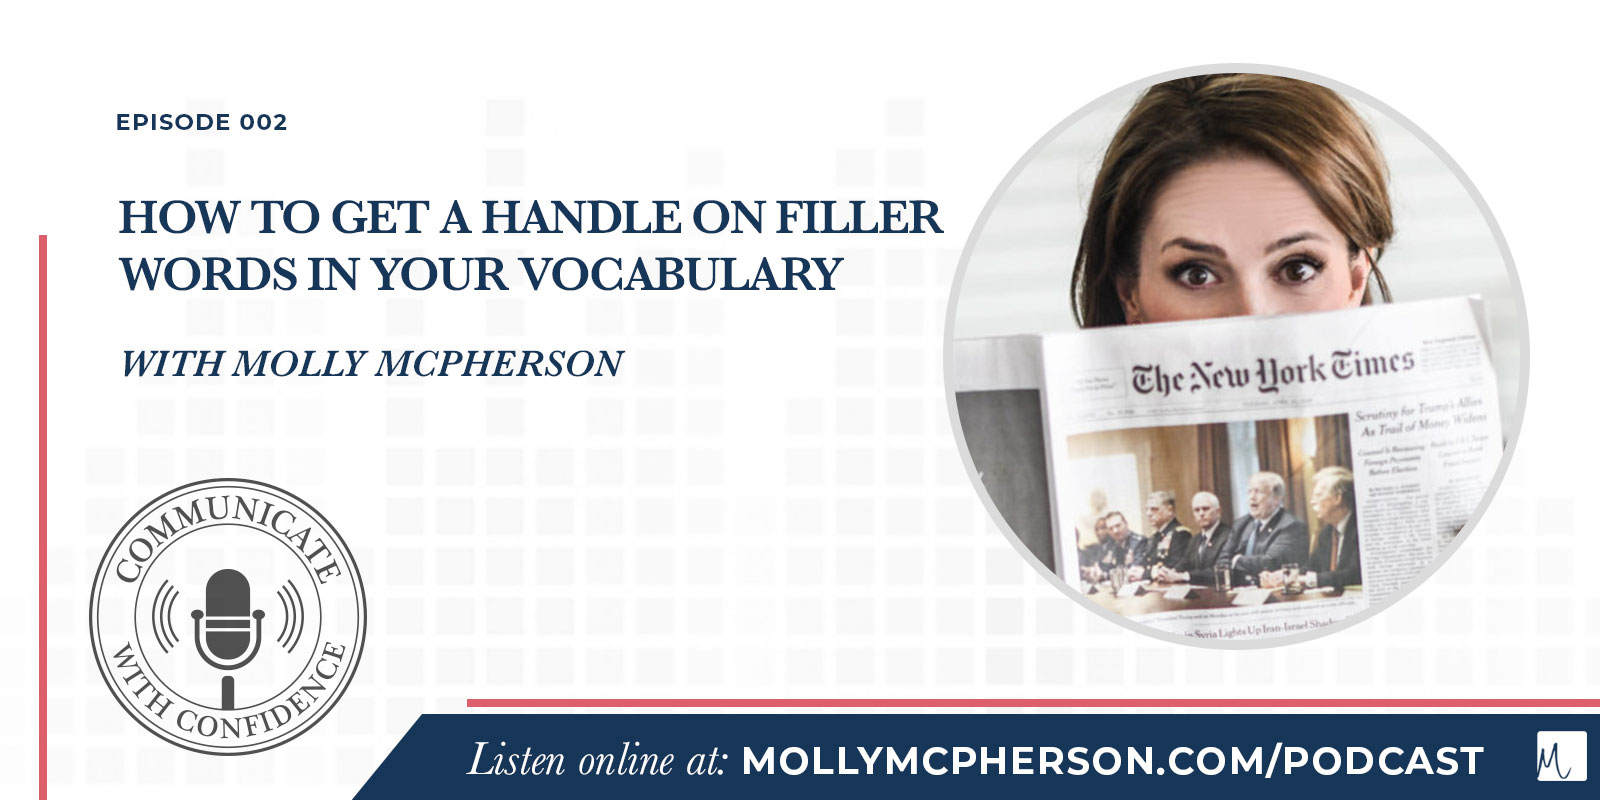 How to Get a Handle on Filler Words in Your Vocabulary